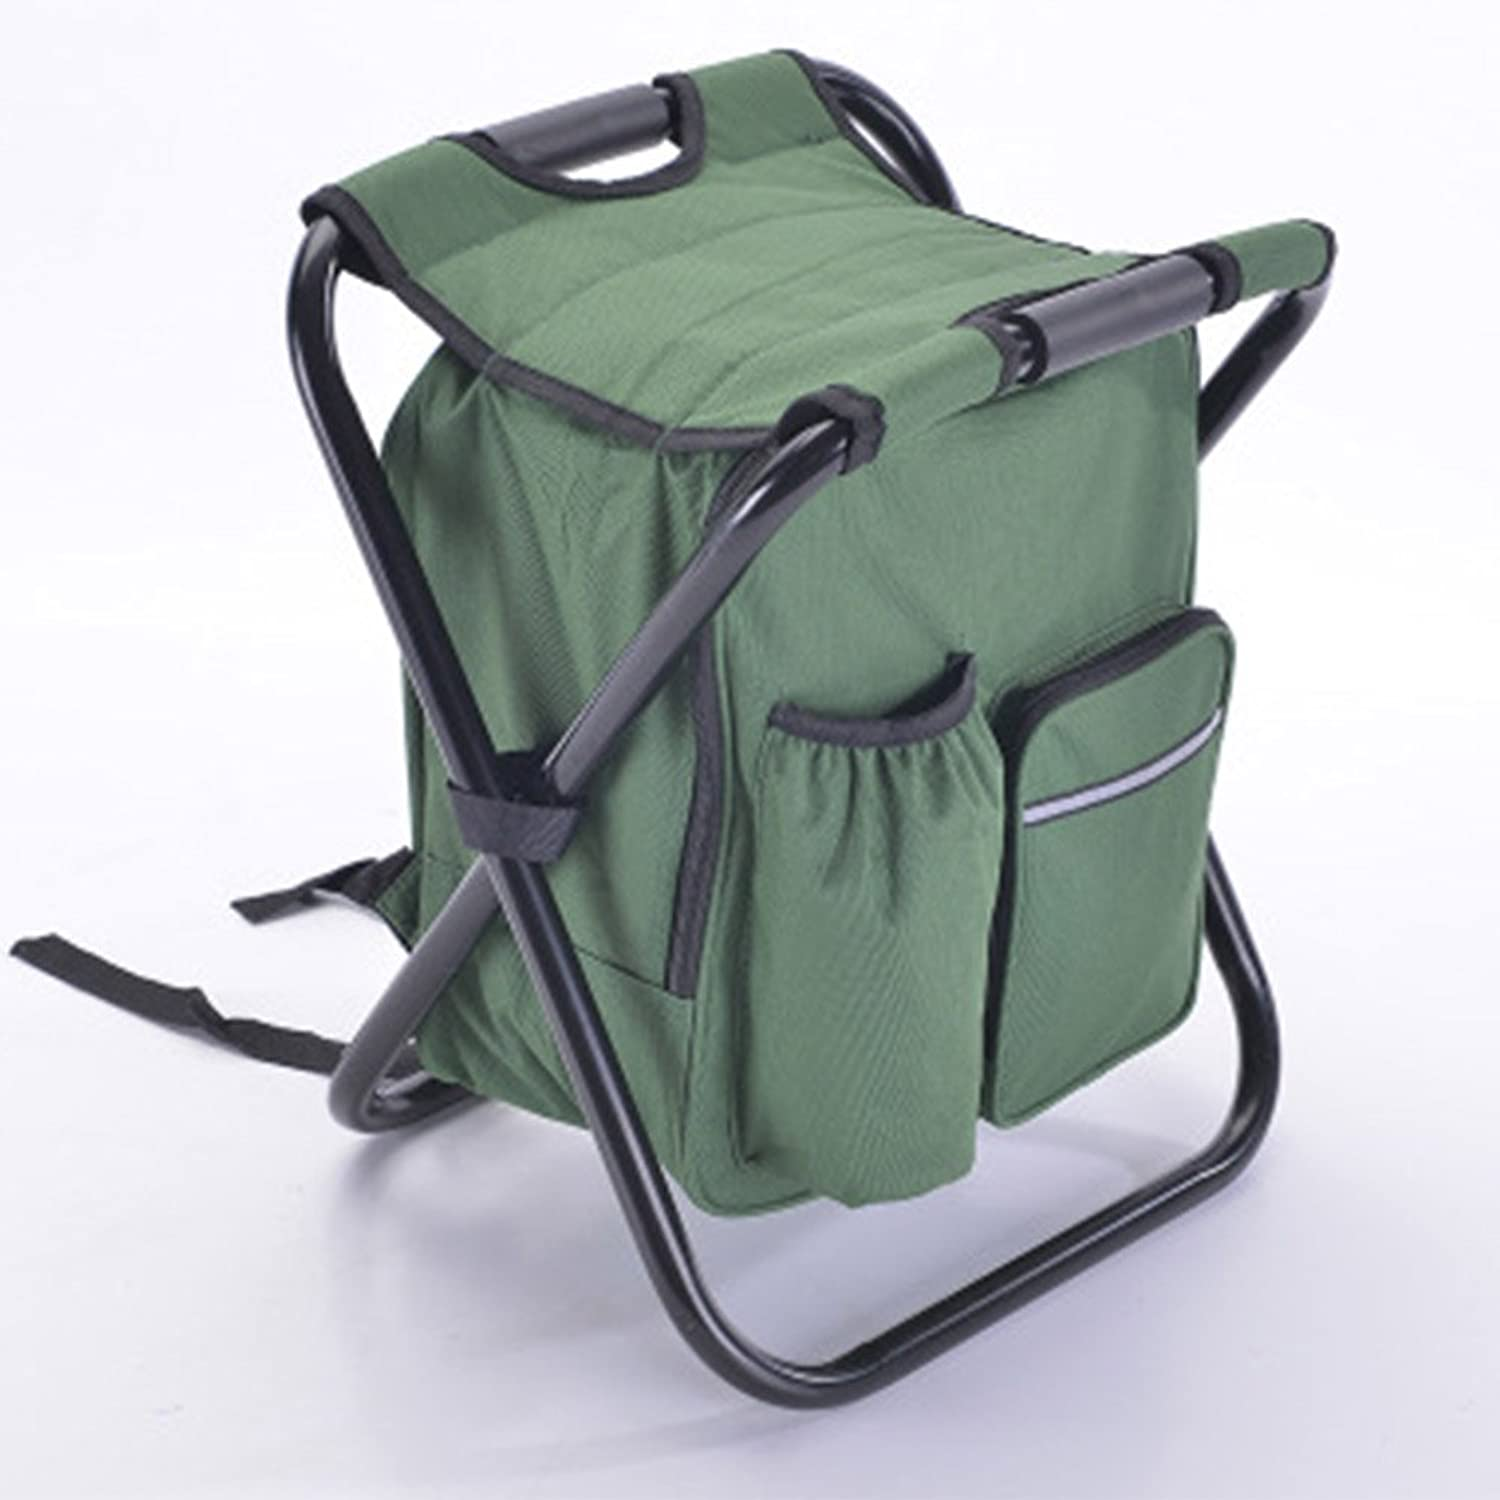 Folding Cooler and Stool Backpack,Foldable Chair with Double Layer Oxford Fabric Cooler Bag for Fishing